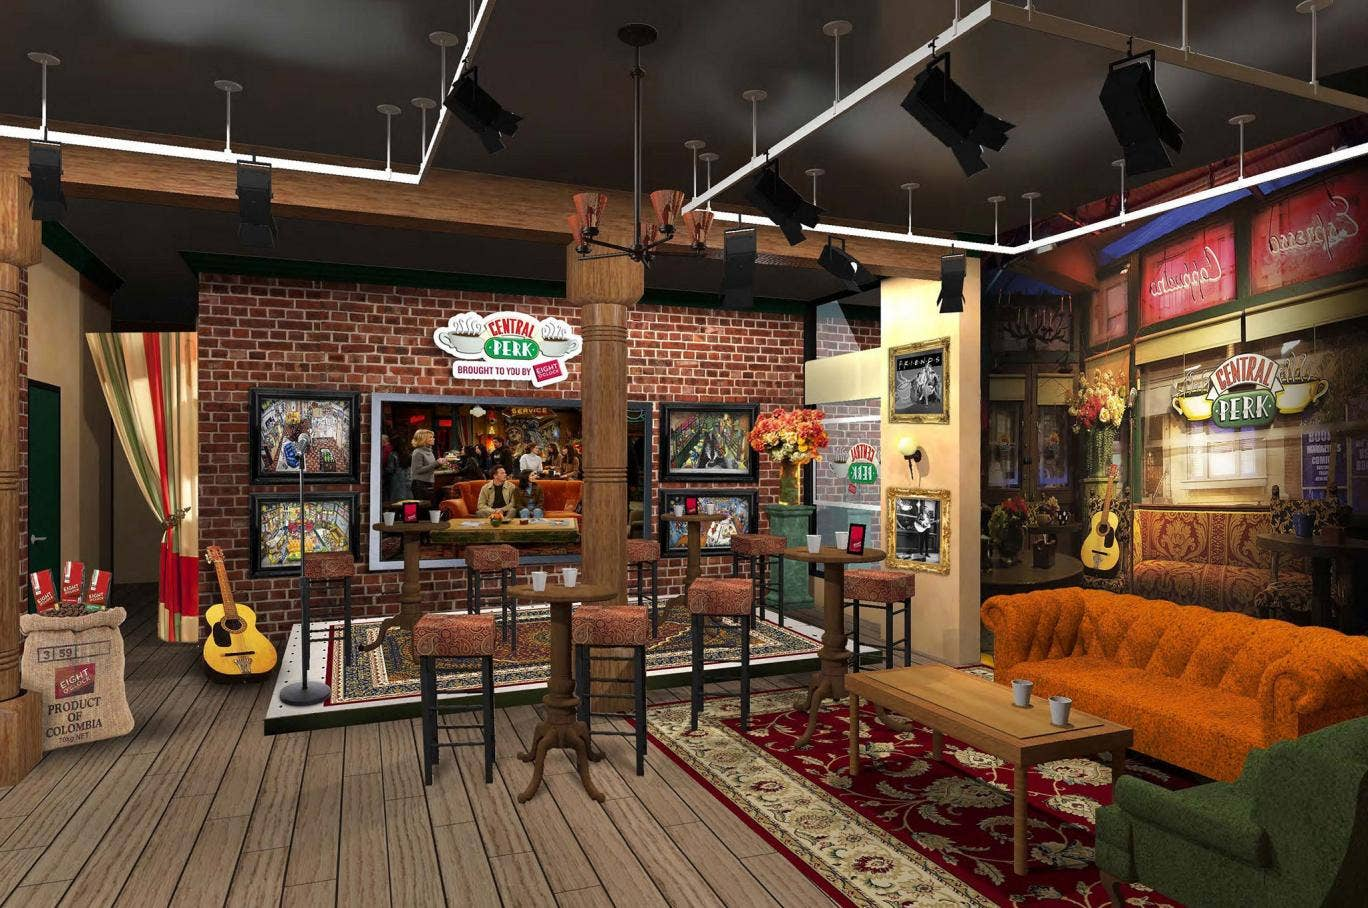 Warner Bros released a mock-up of what the new Central Perk will look like